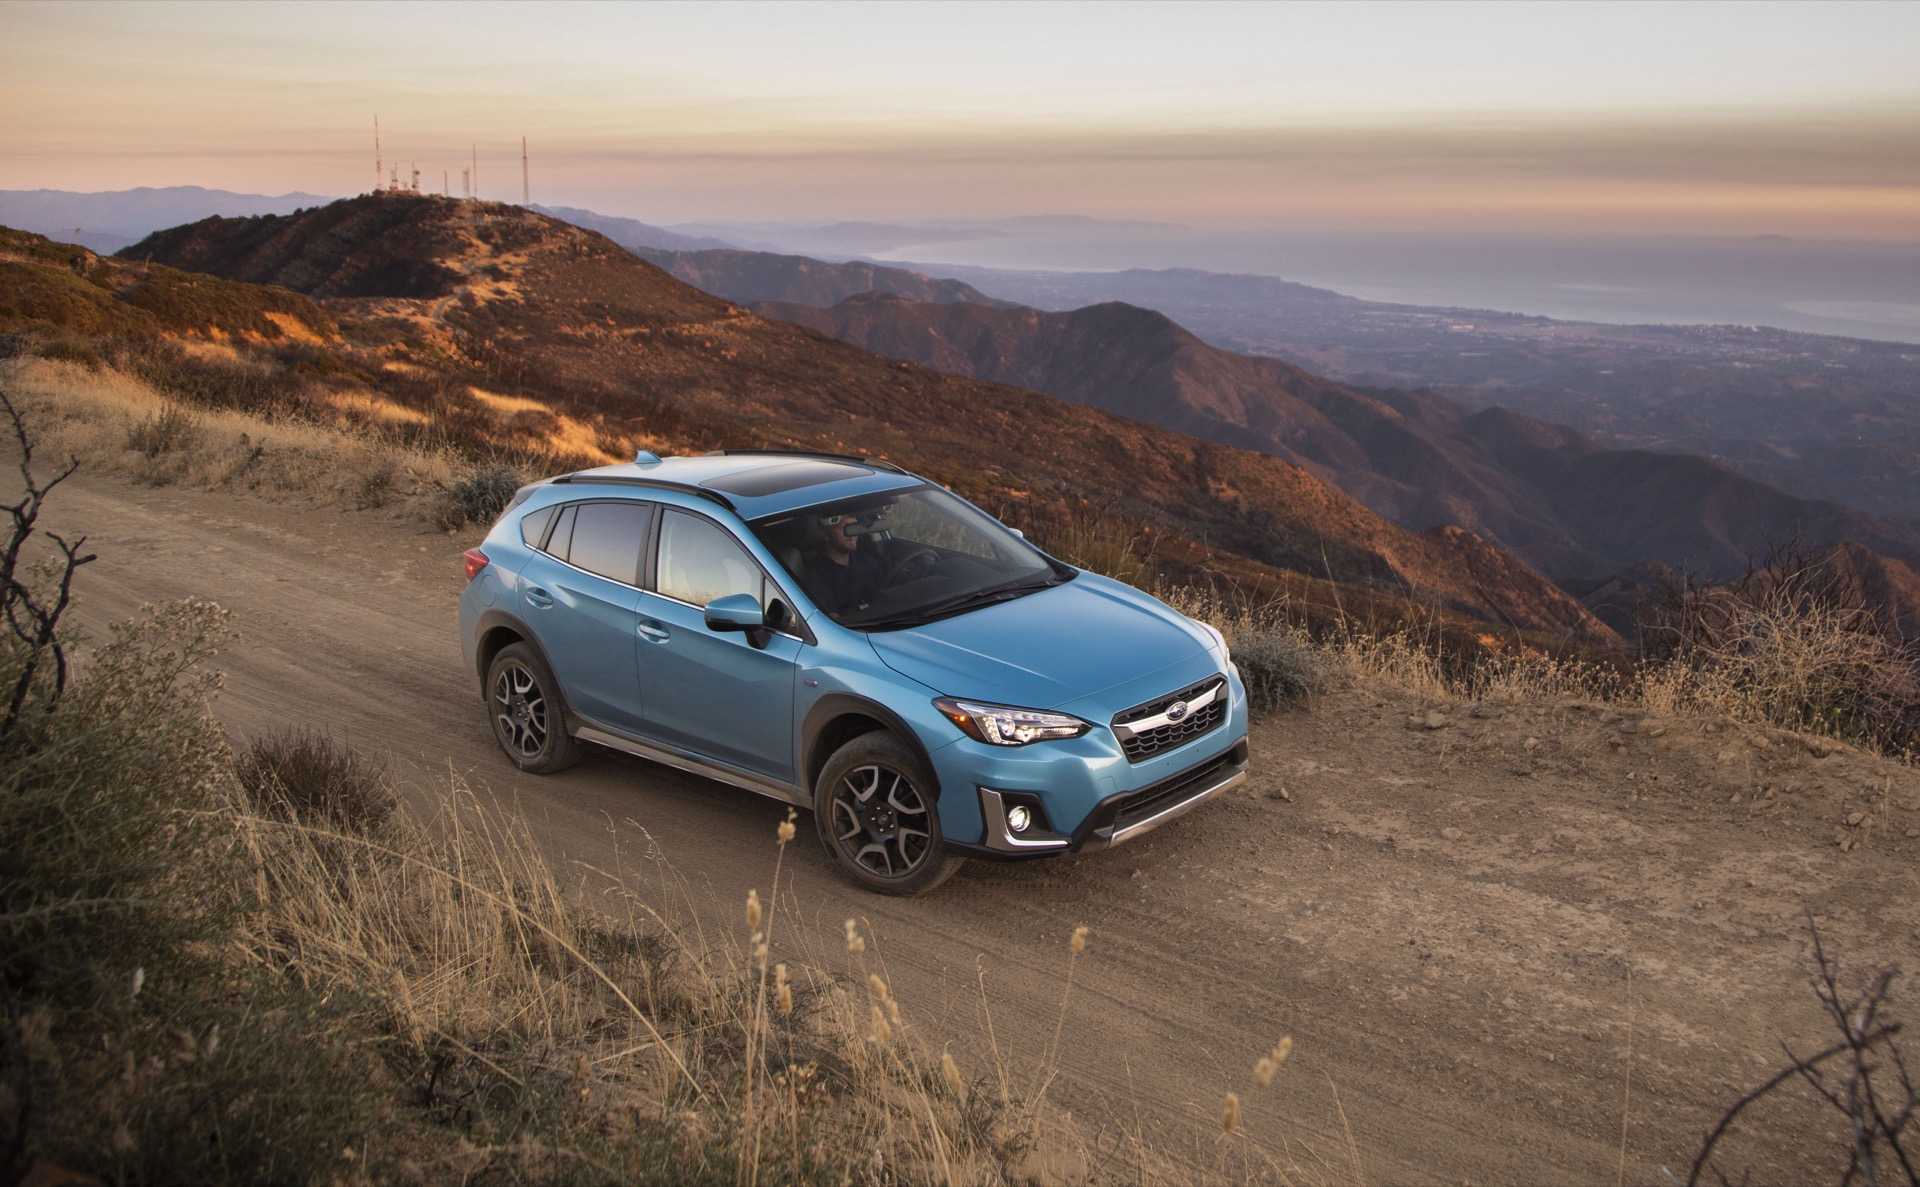 2019 Subaru Crosstrek Hybrid First Drive Of 17 Mile 35 Mpg Plug In